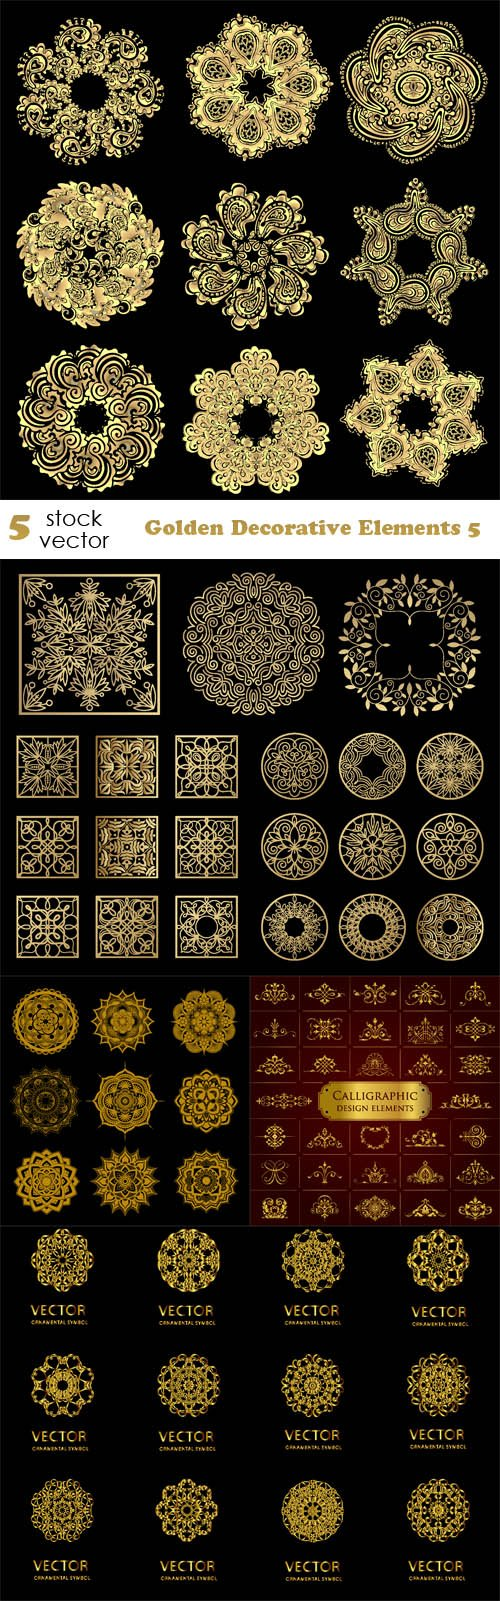 Vectors - Golden Decorative Elements 5